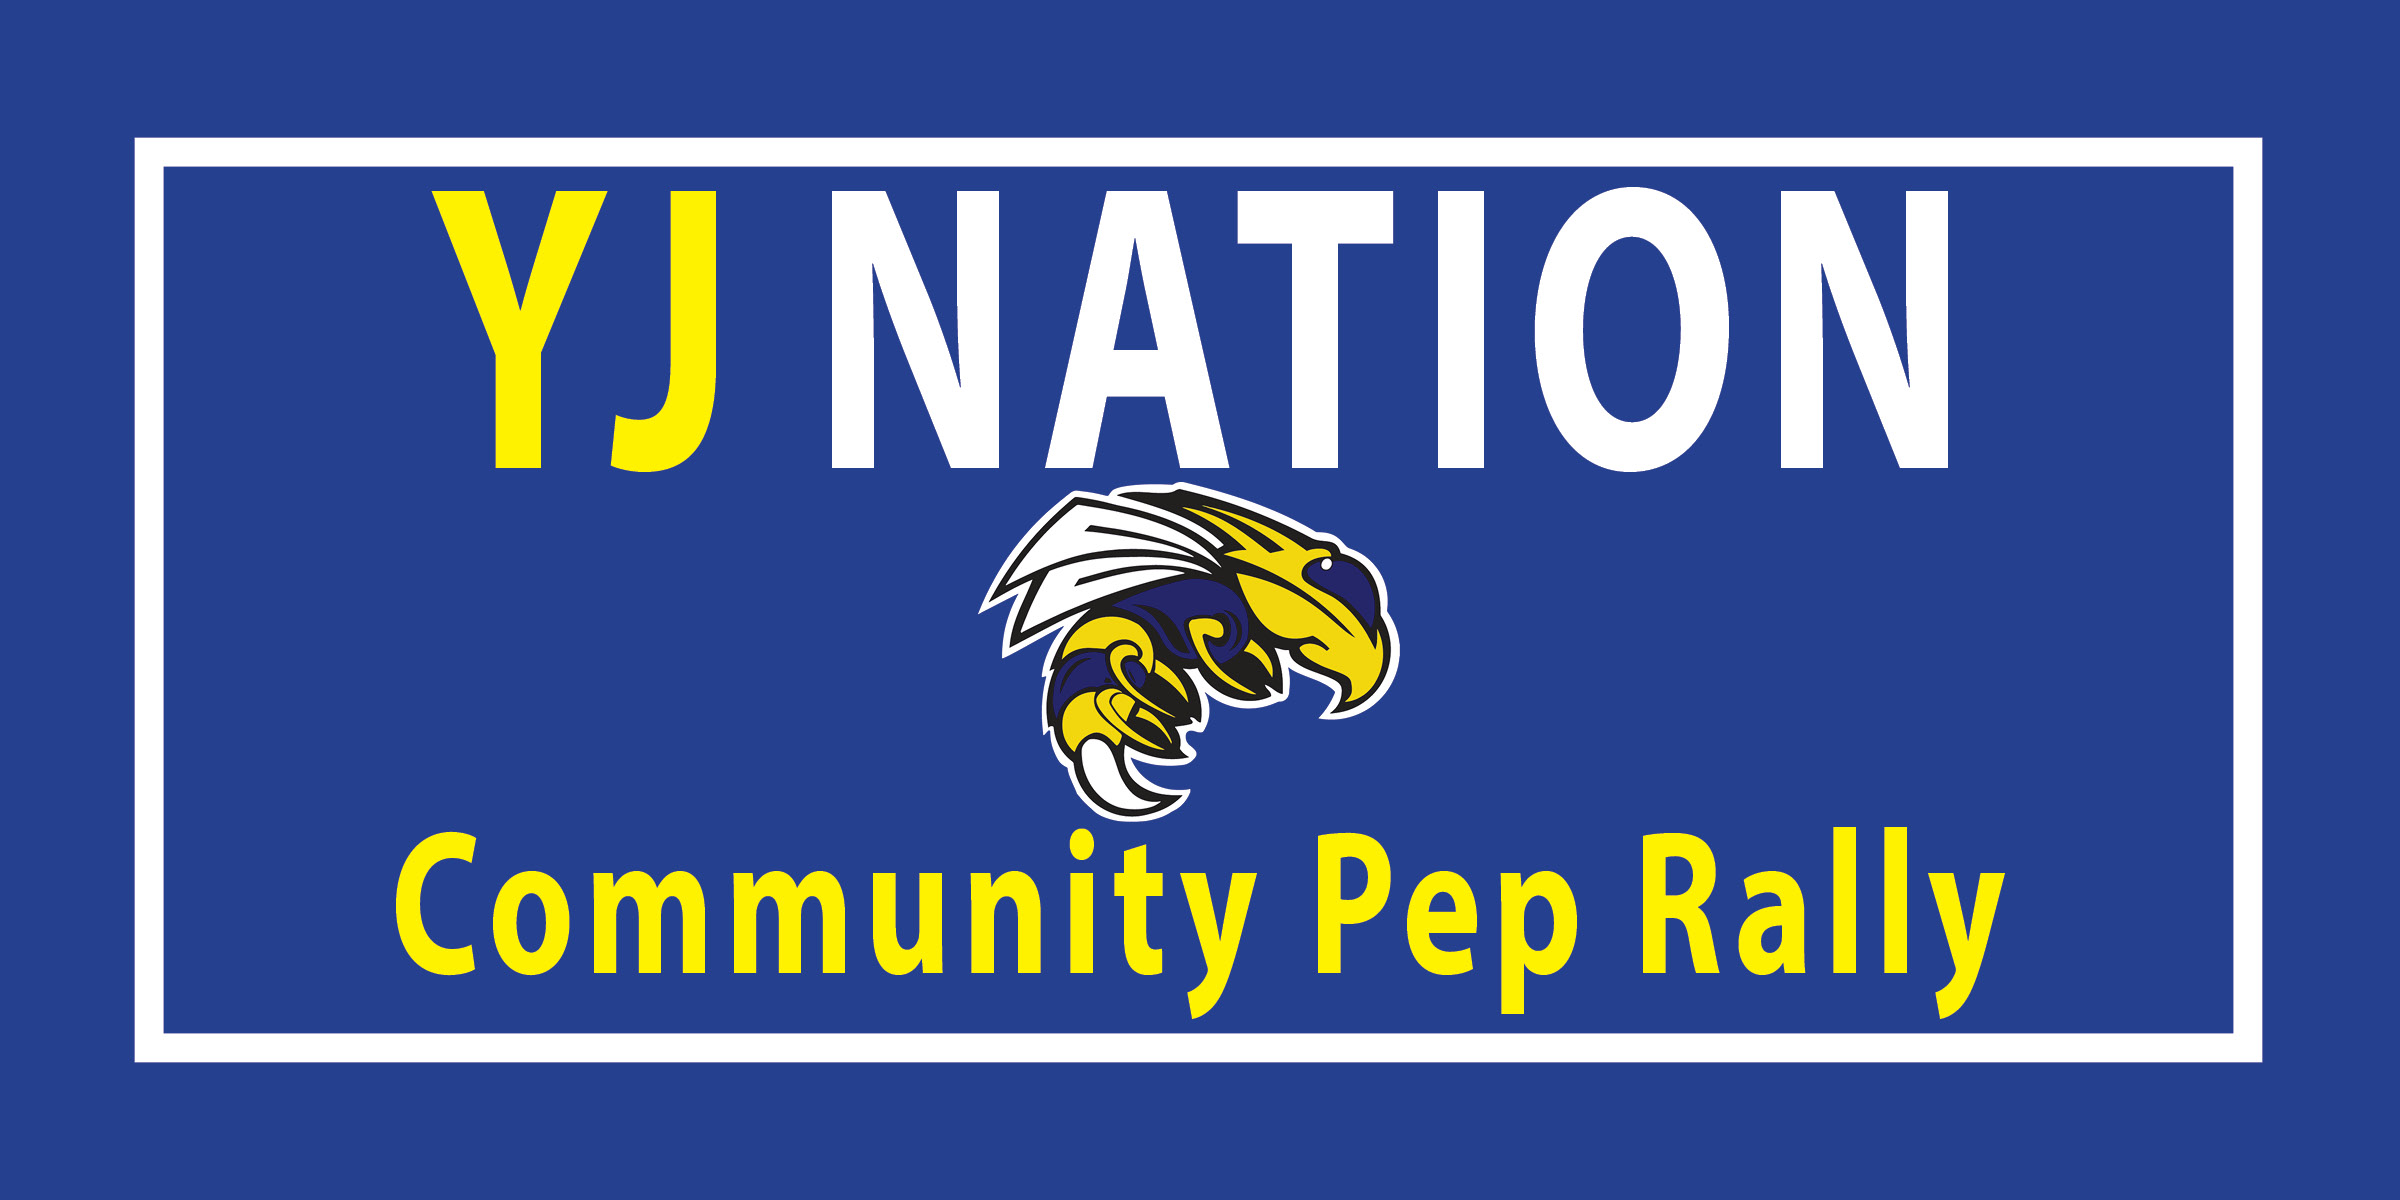 Infographic stating community pep rally for YJ Nation